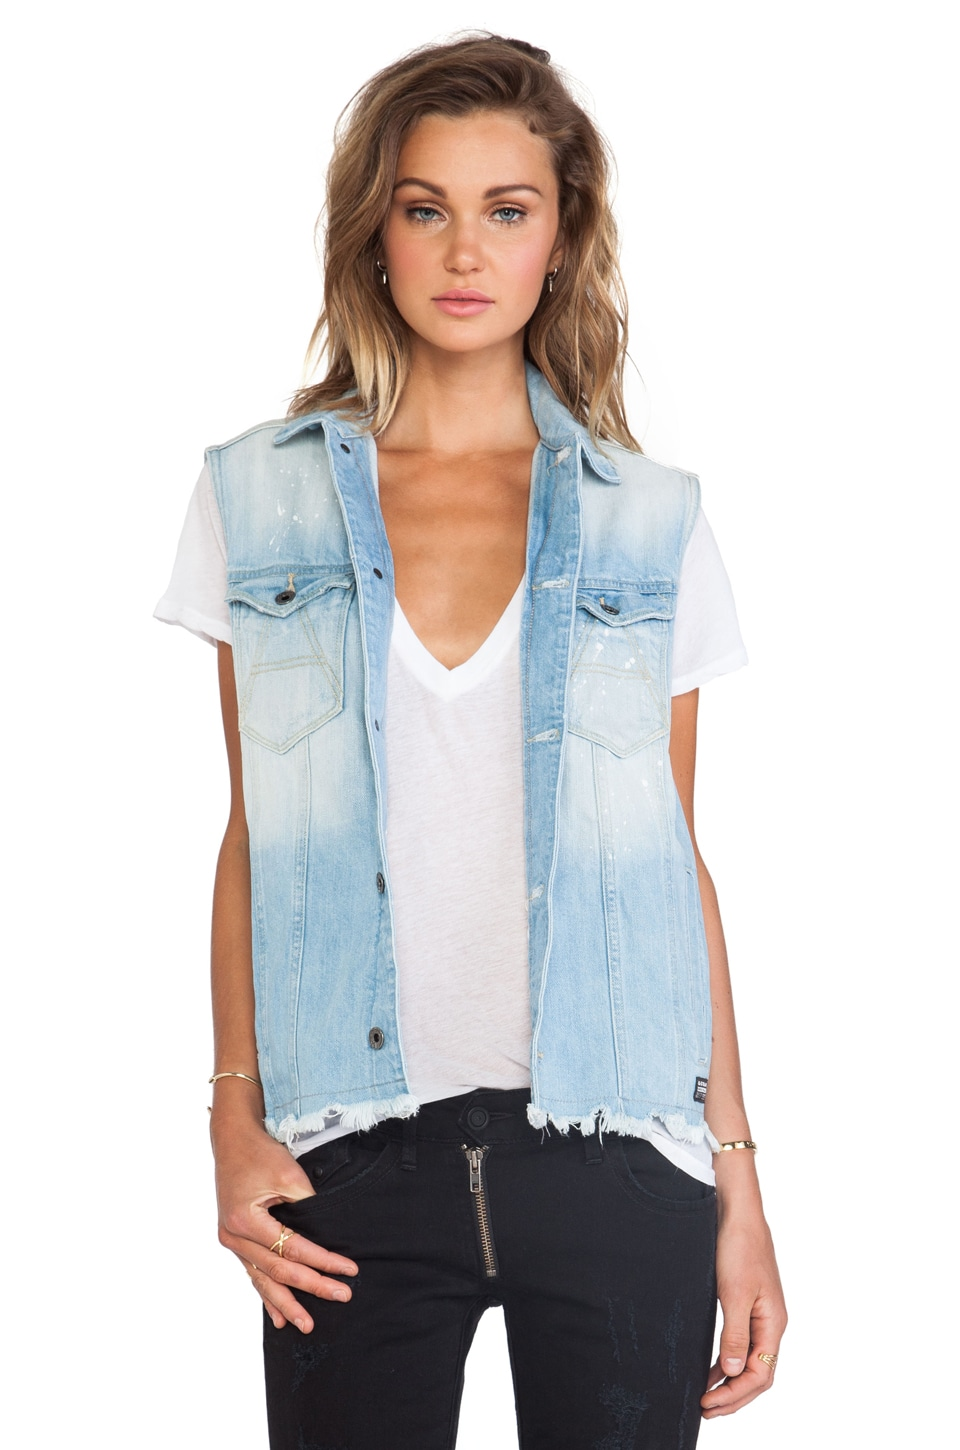 G-Star A Crotch Ripped Jacket Sleeveless in Light Aged Ripped